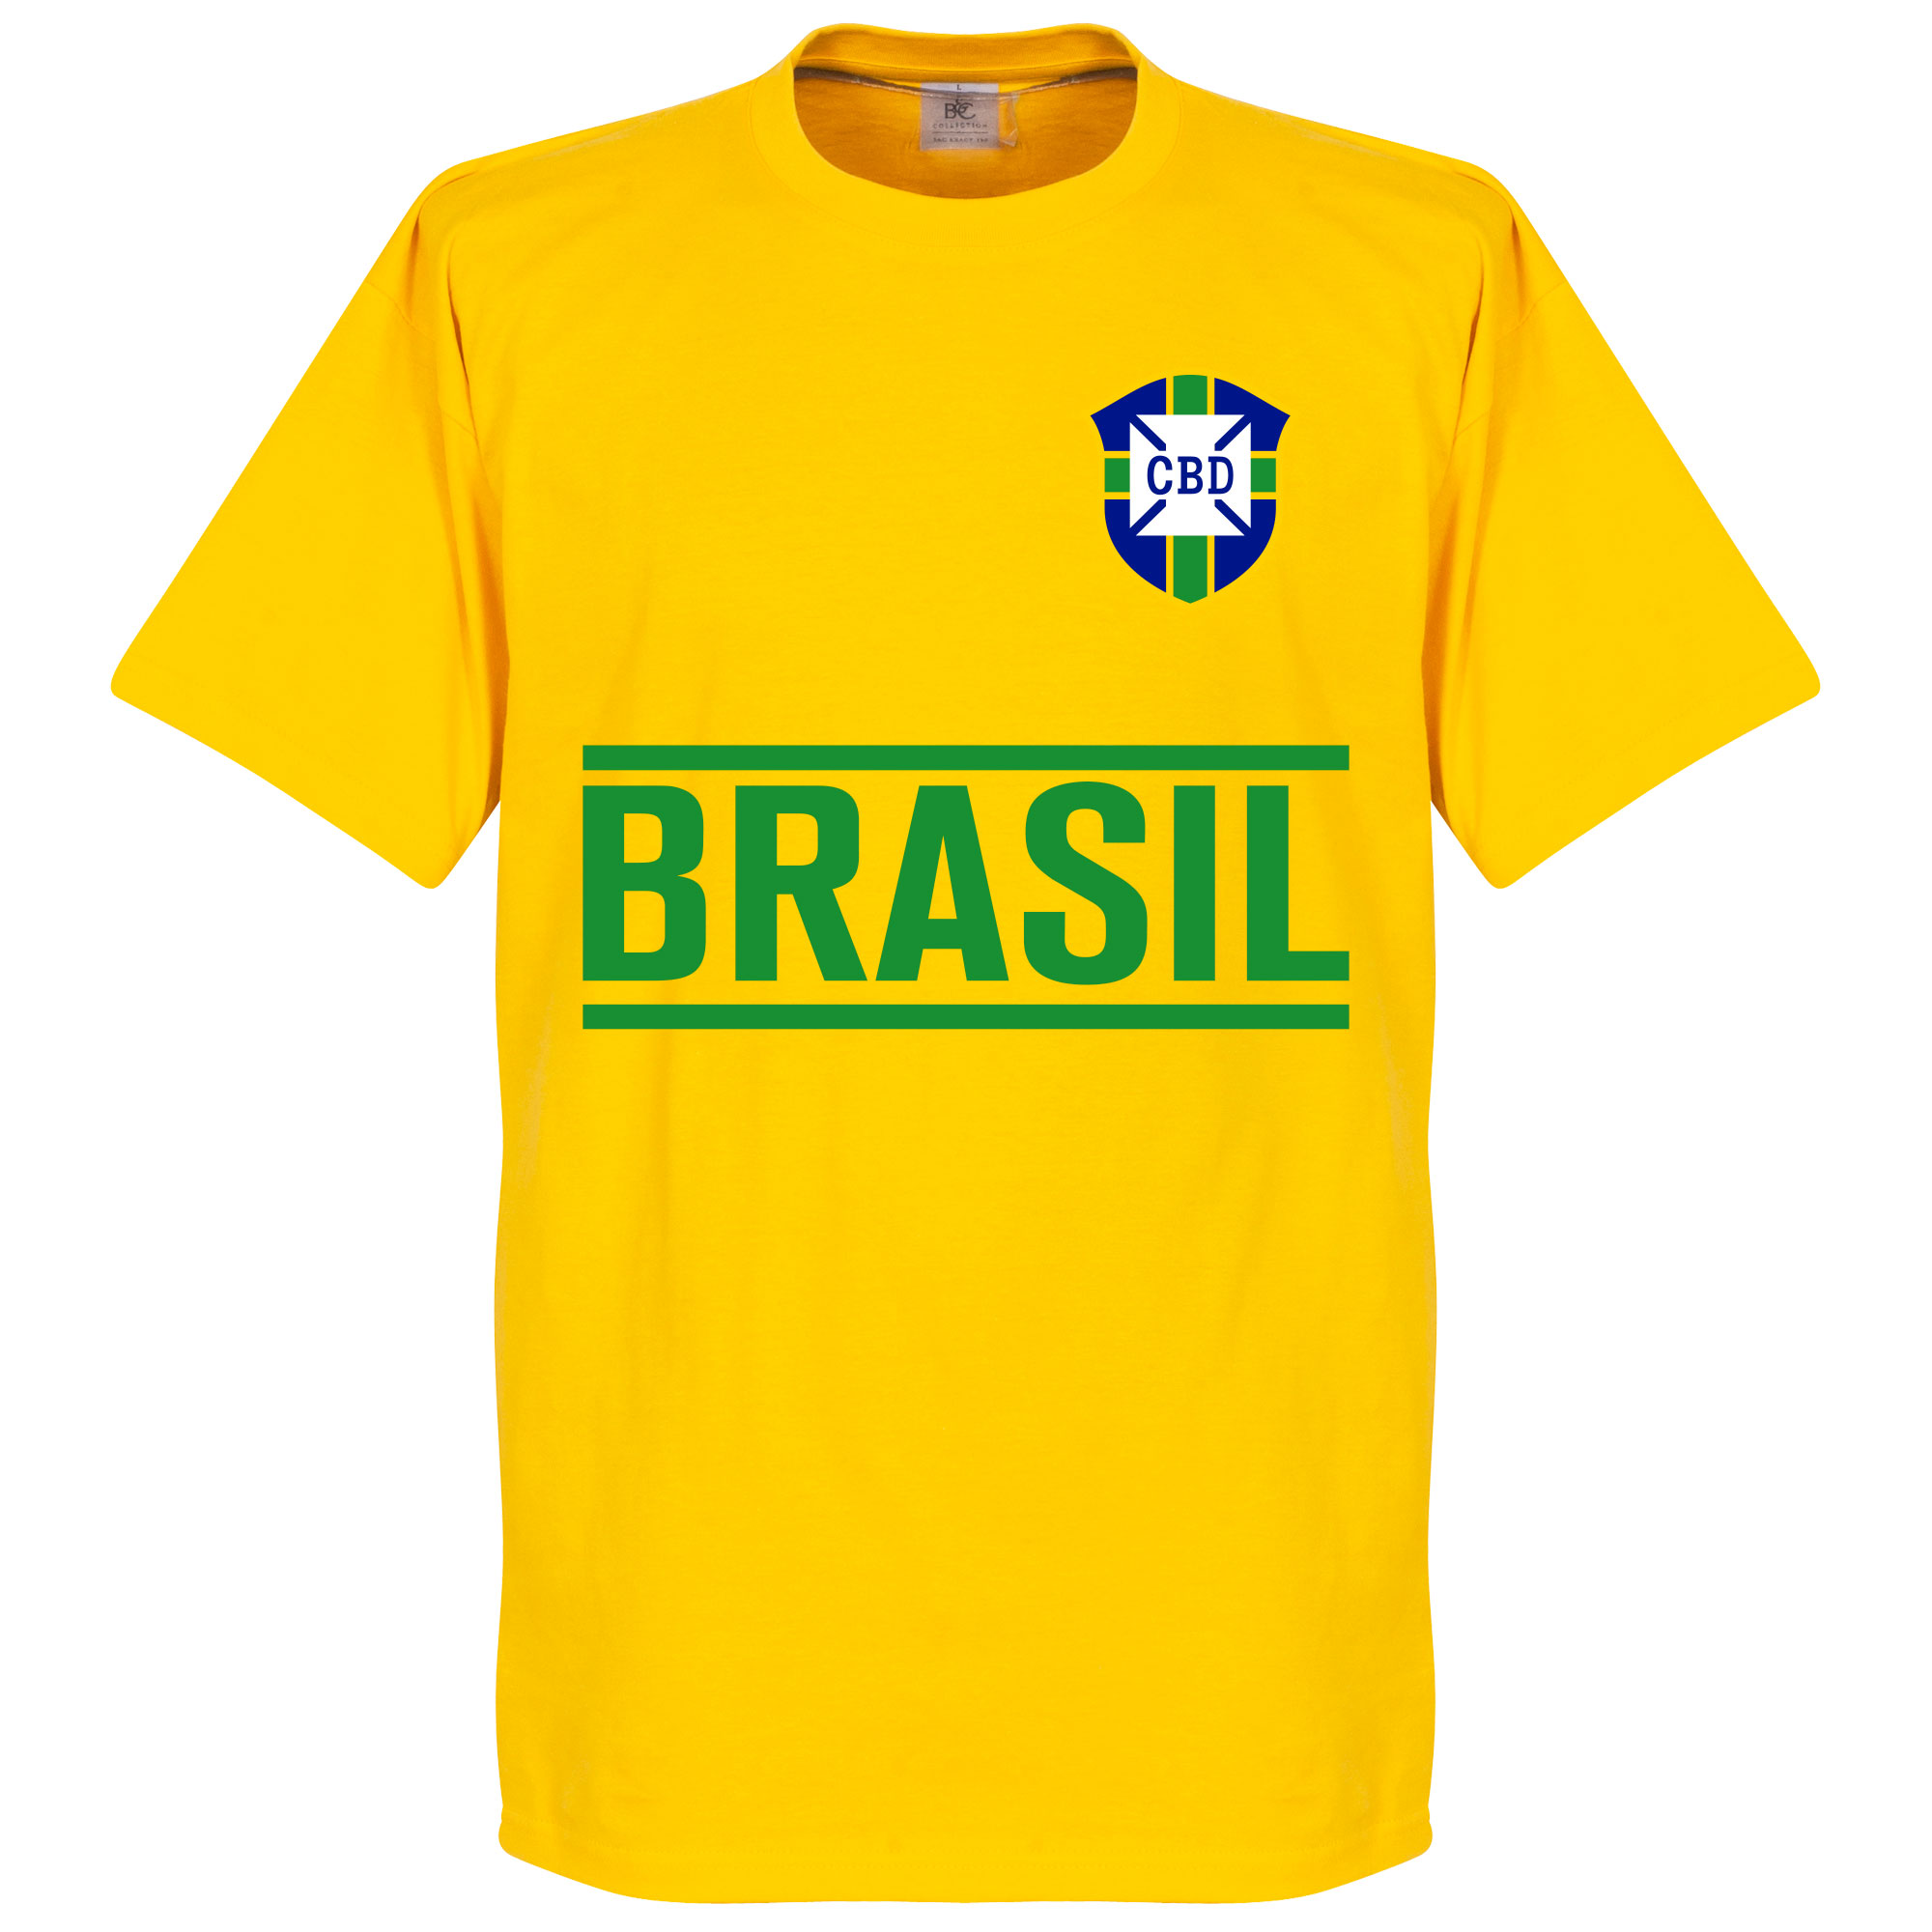 Brazil Team Tee - Yellow - S